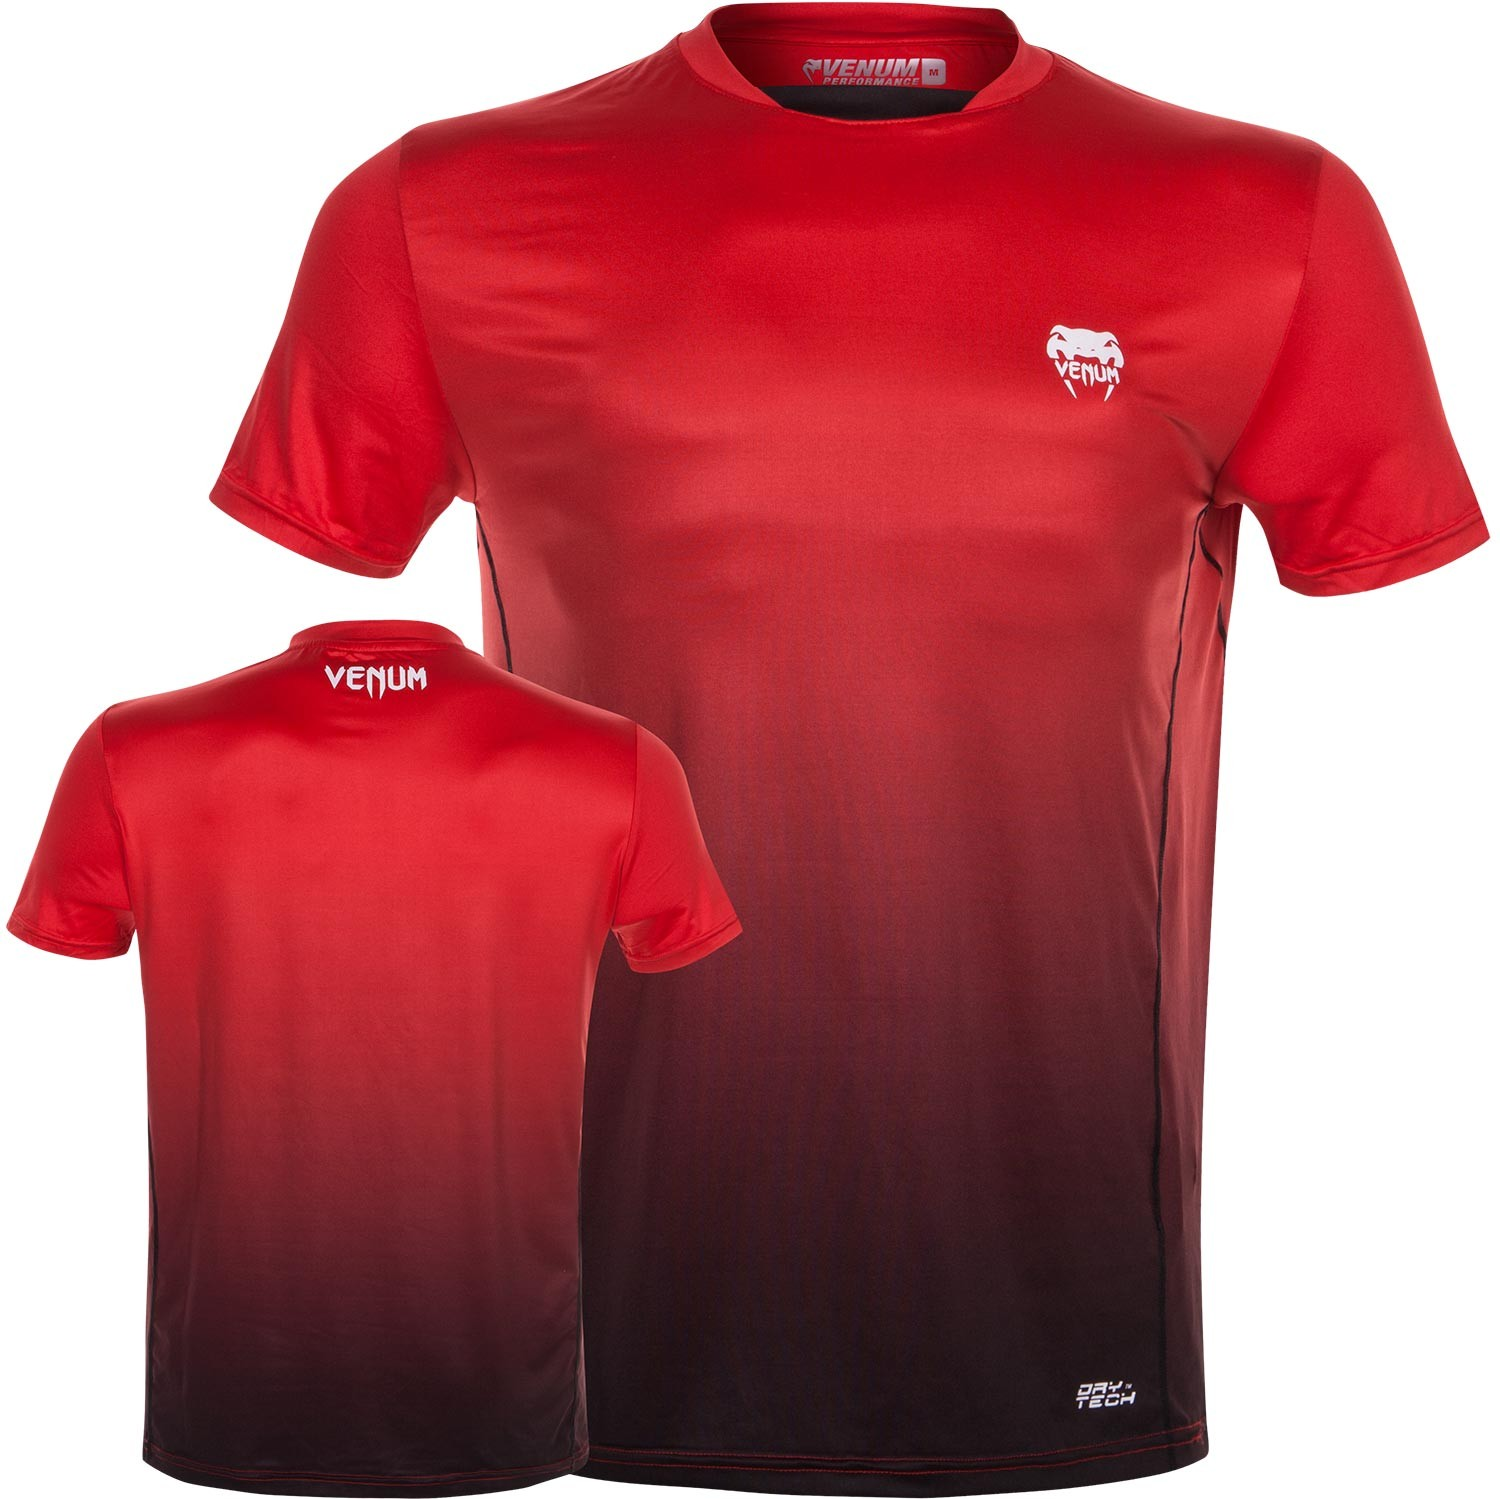 Футболка Venum Contender Dry Tech T-Shirt - Red<br>Вес кг: 200.00000000;